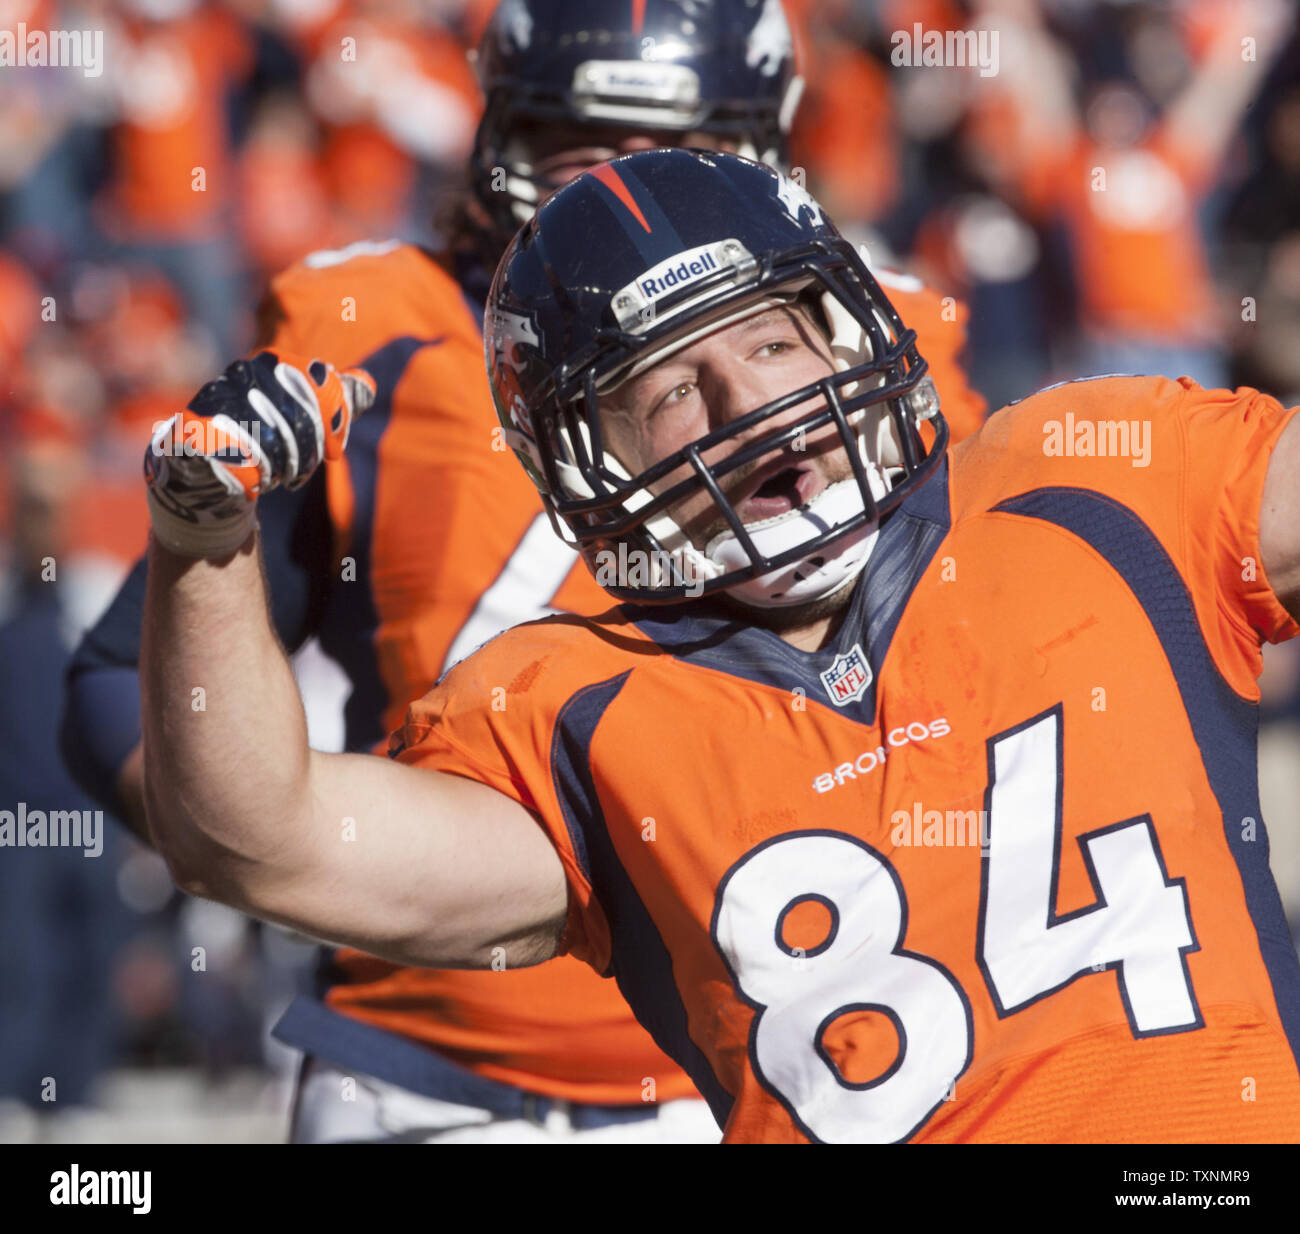 Jacob Tamme High Resolution Stock Photography and Images - Alamy